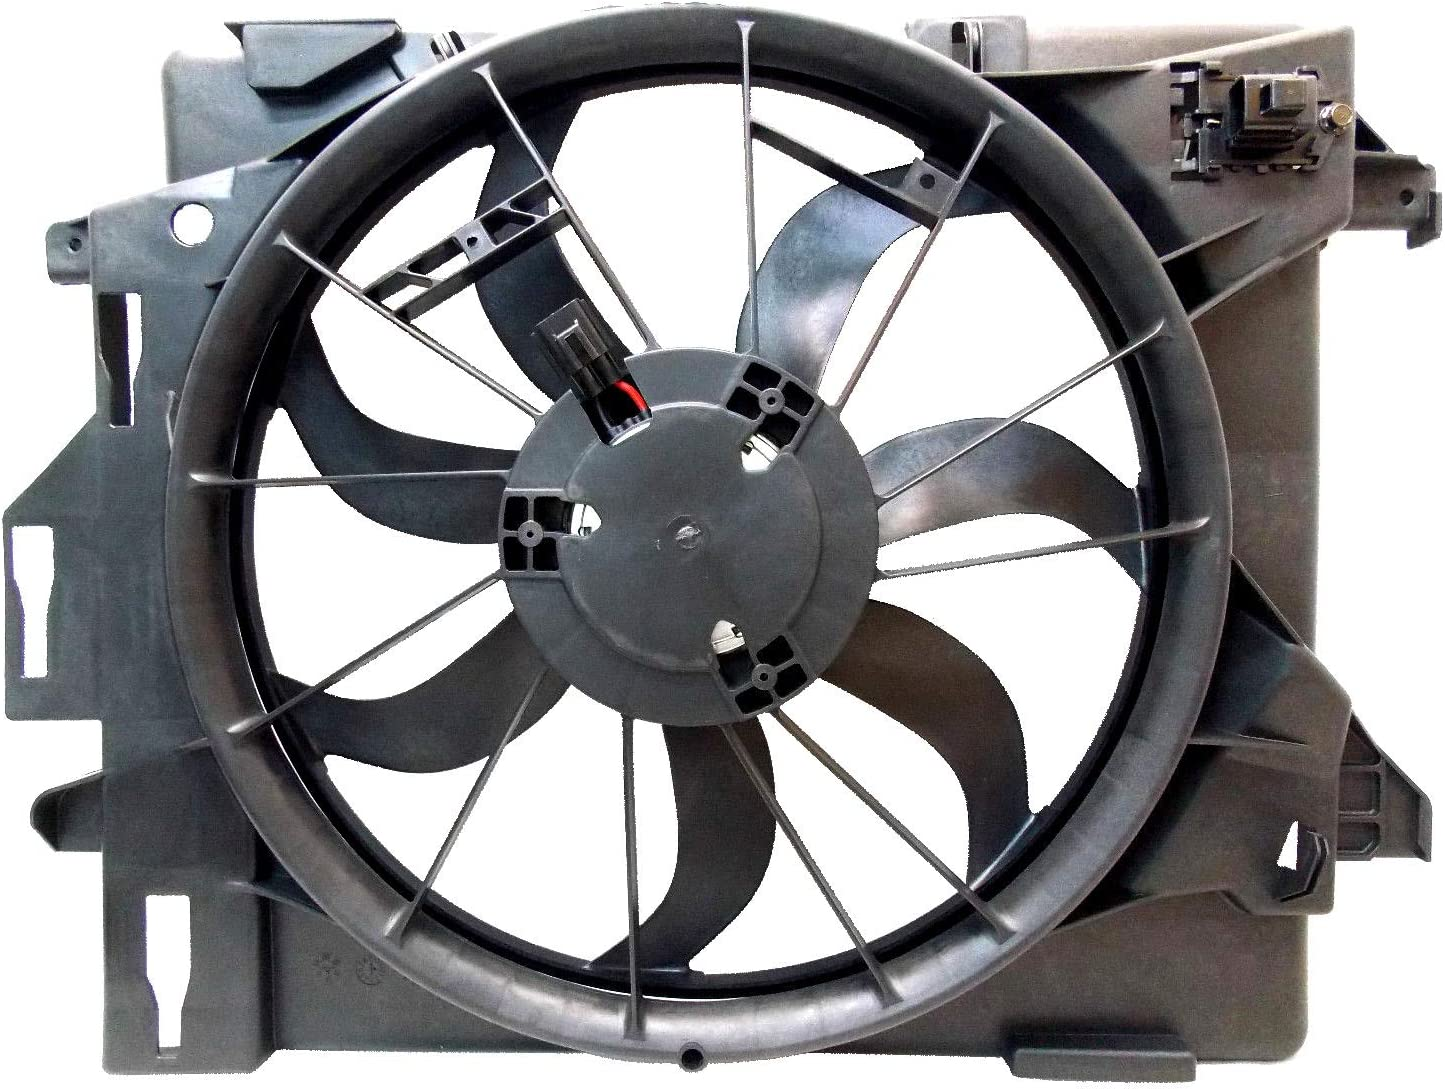 Sunbelt Radiator And Condenser Fan For Dodge Grand Caravan Chrysler CH3115157 Drop in Fitment